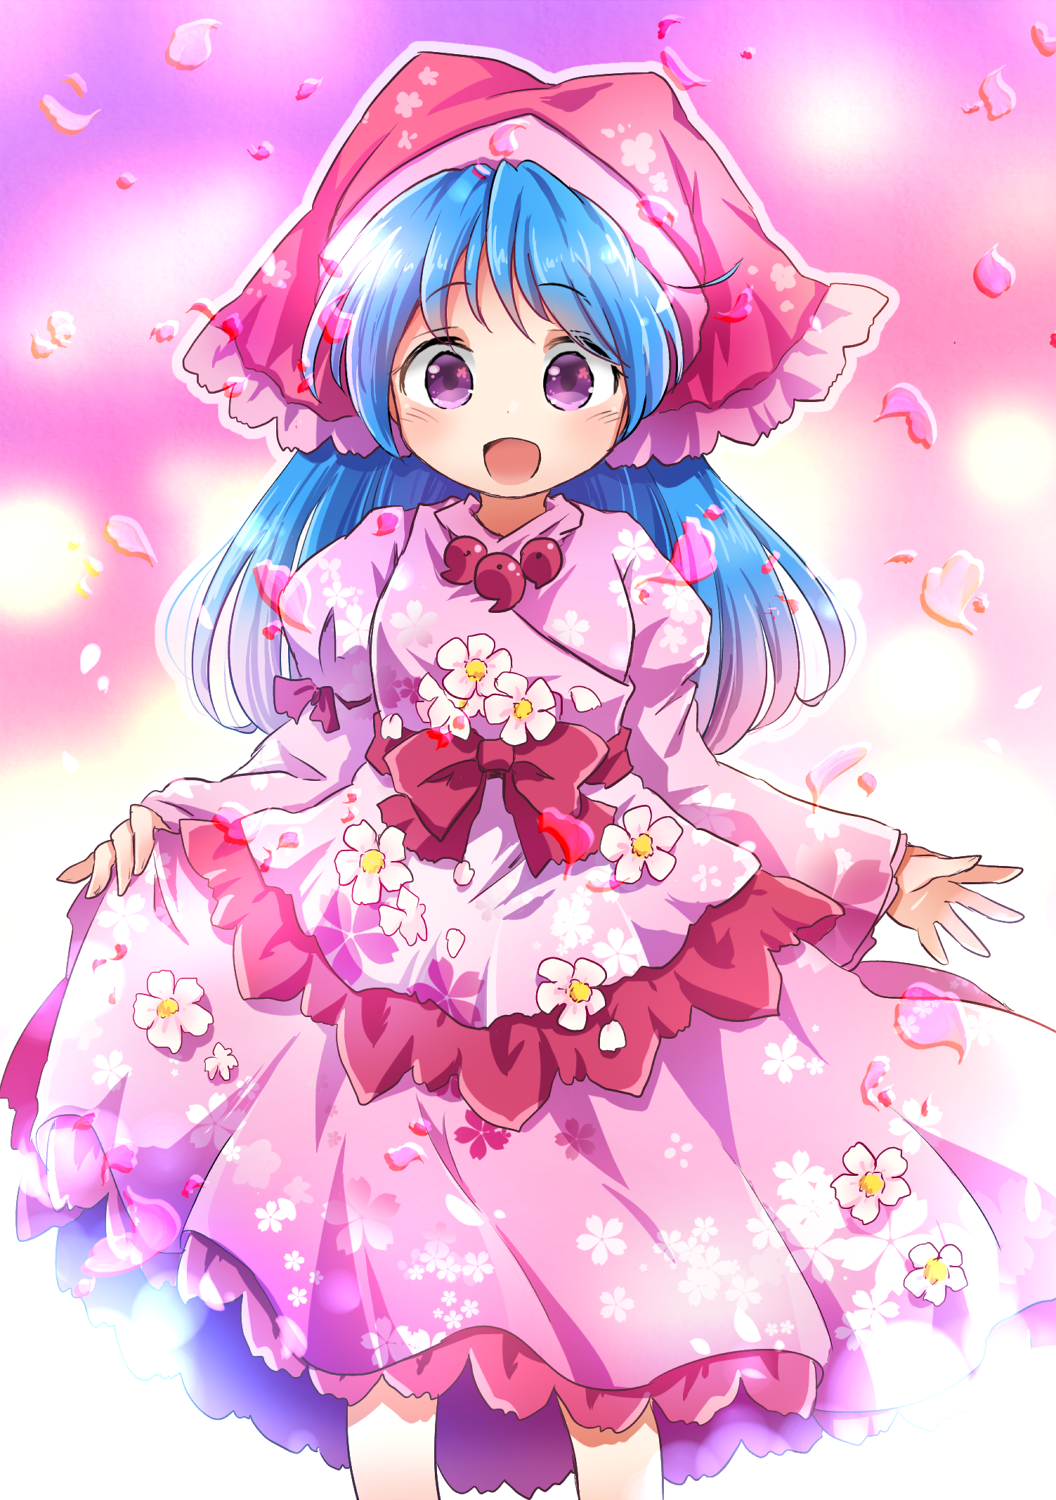 1girl :d alternate_costume arms_up blue_hair bow cherry_blossom_print commentary cropped_legs daisy dress dress_flower eyebrows_visible_through_hair floral_print flower gradient gradient_background haniyasushin_keiki highres hood juliet_sleeves layered_dress long_hair long_sleeves looking_at_viewer magatama magatama_necklace open_mouth petals petticoat pink_background pink_dress pink_headwear pote_(ptkan) puffy_sleeves red_bow sash skirt_hold smile solo spring_(season) standing touhou very_long_hair violet_eyes